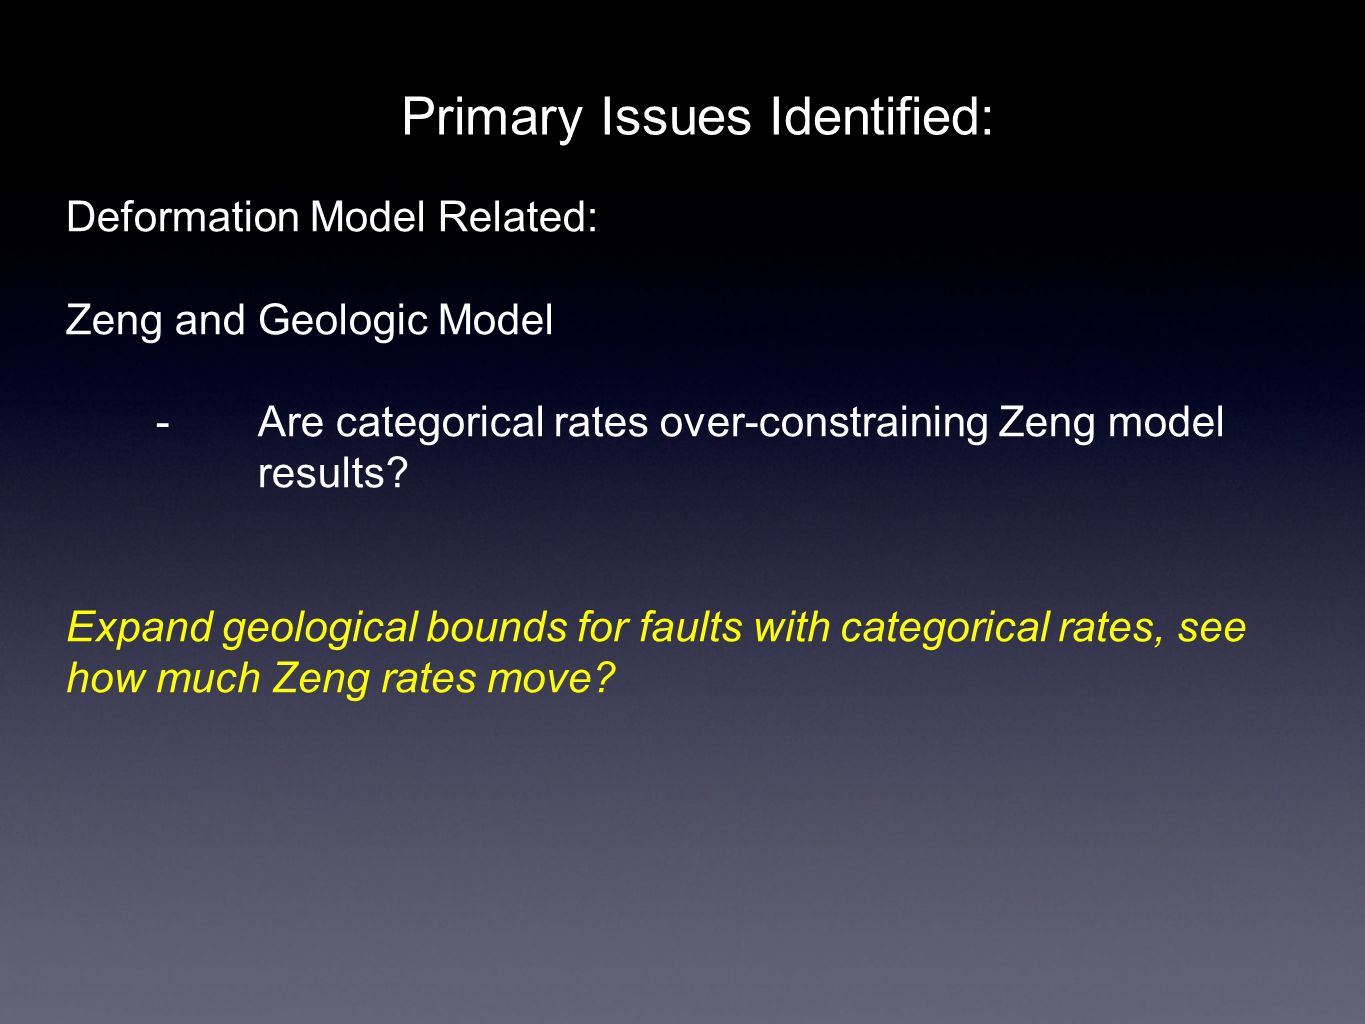 Primary Issues Identified: Deformation Model Related: Zeng and Geologic Model - Are categorical rates over-constraining Zeng model results? Expand geo